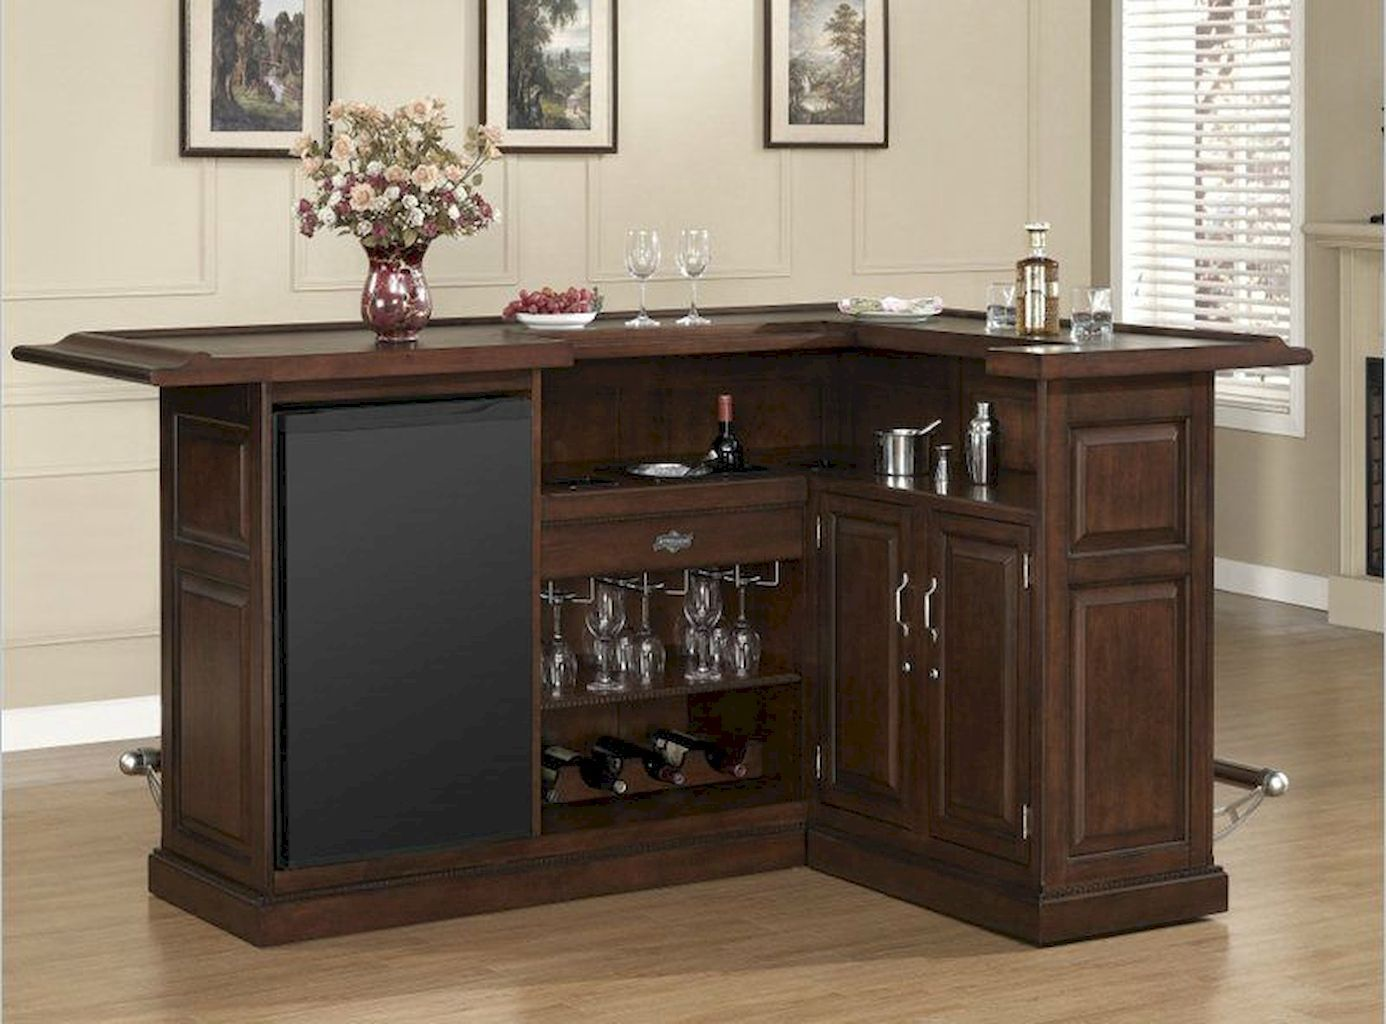 Top mini bar ideas for your home corner interior bars for